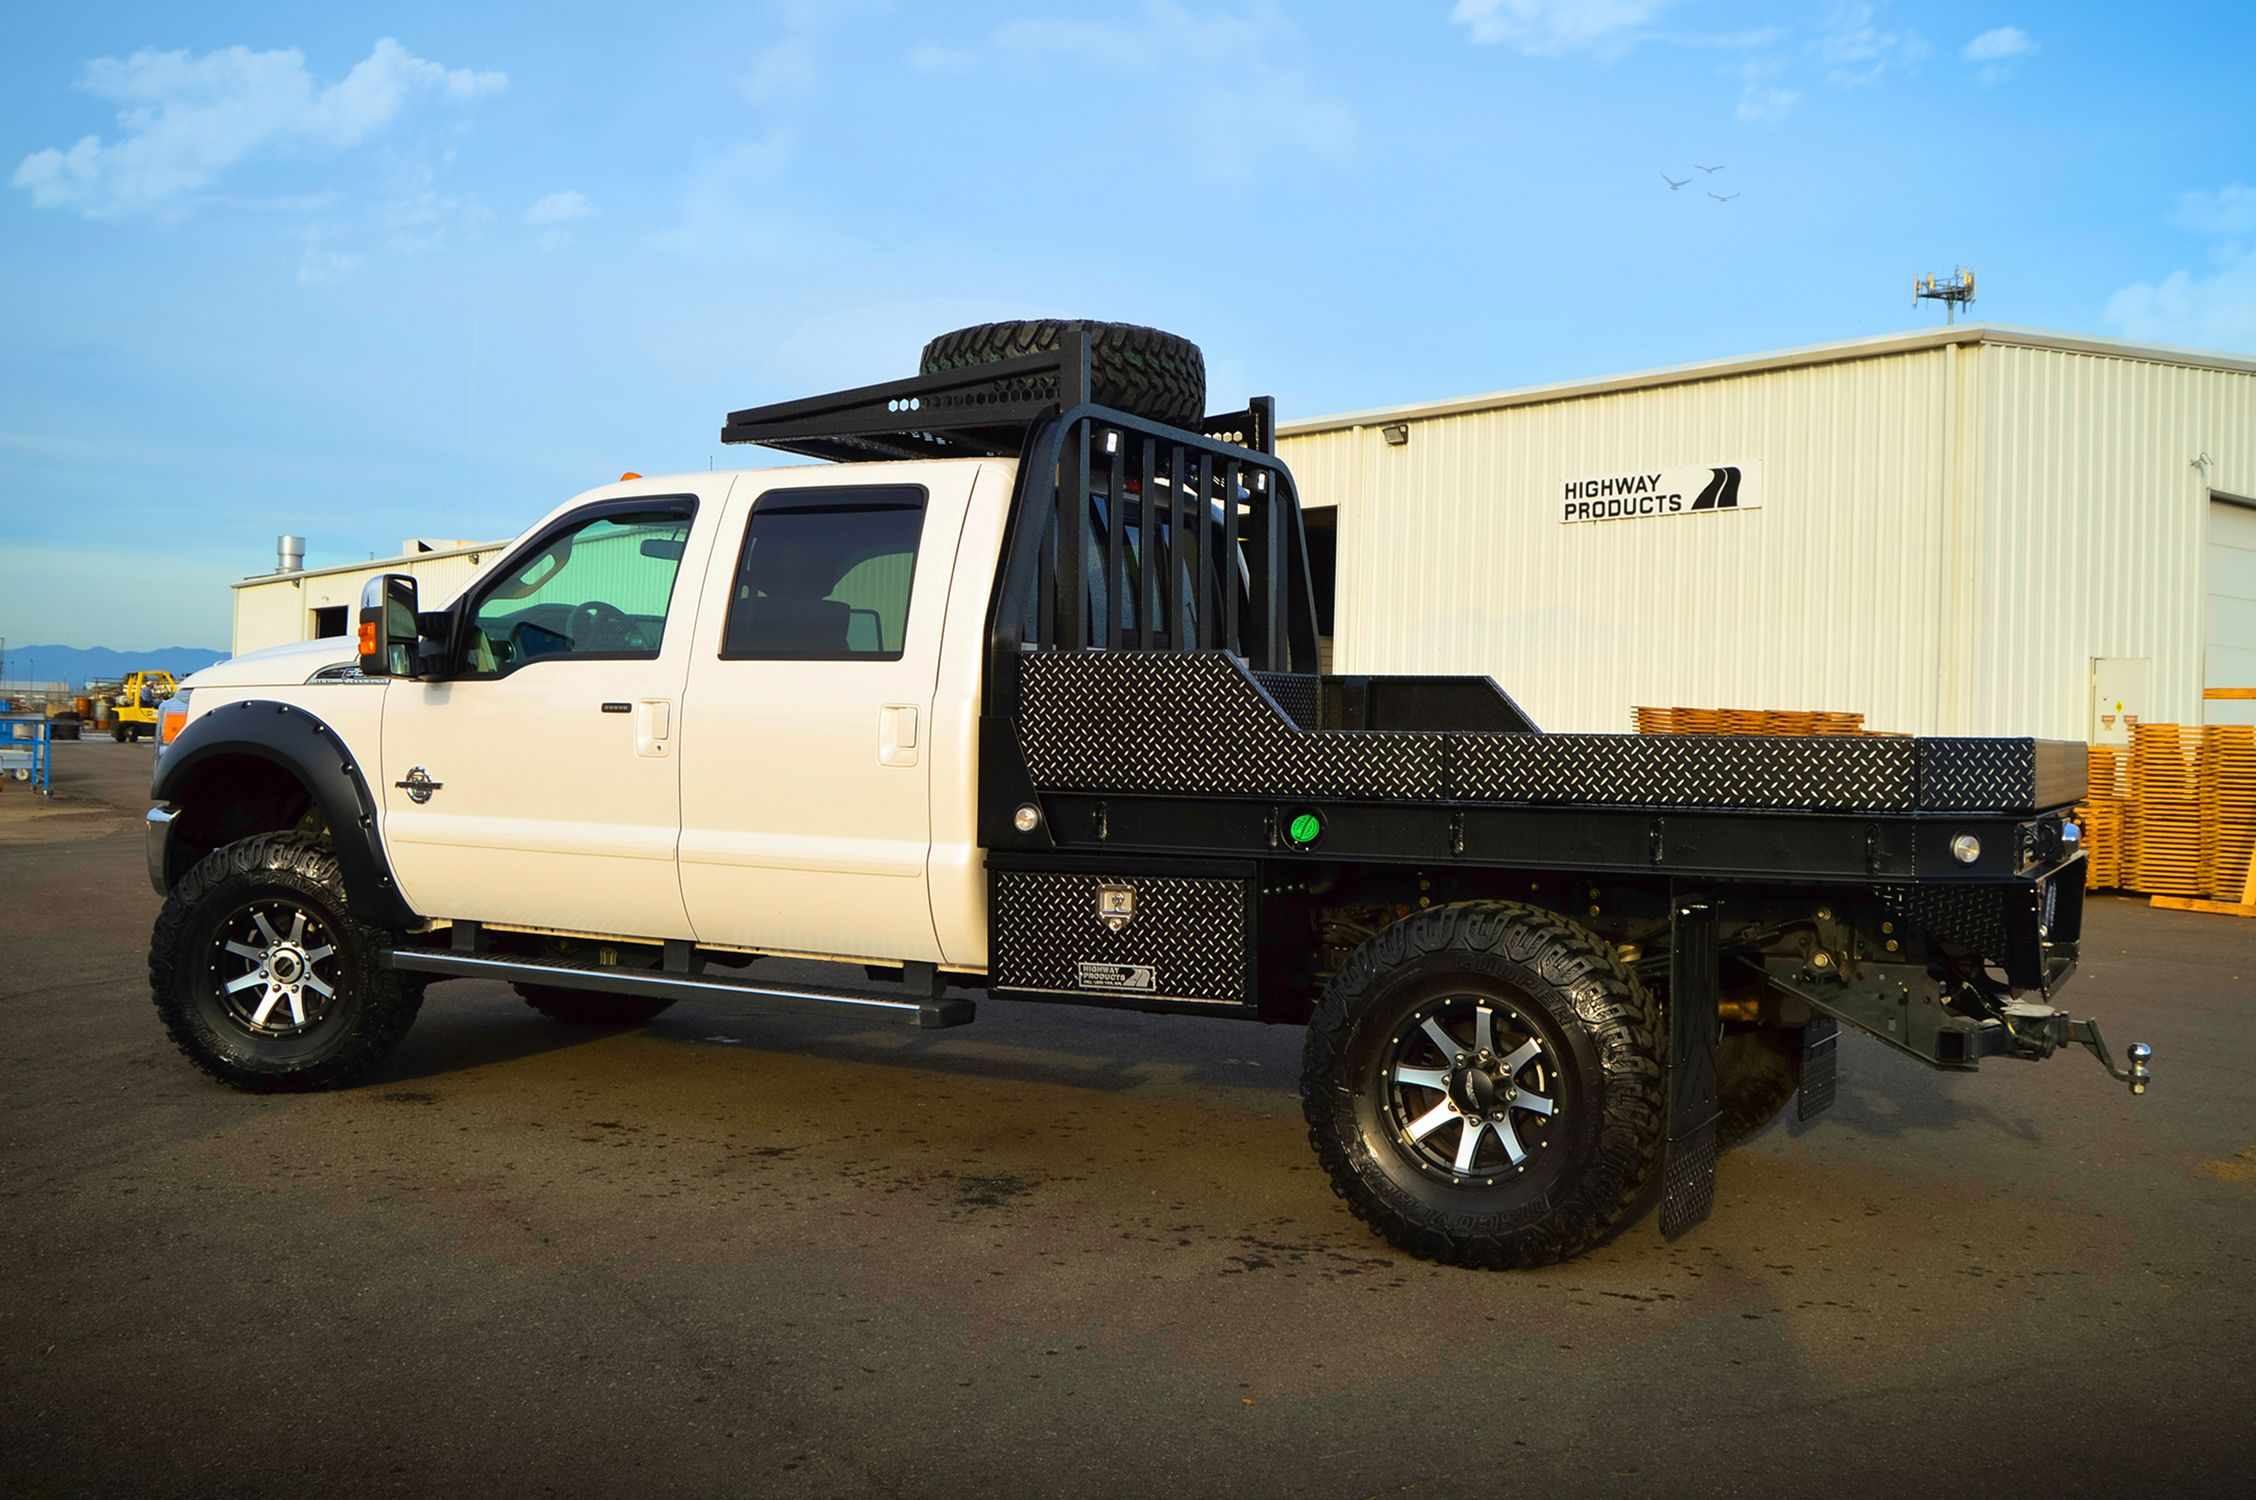 Plans for flatbed ford f350 - 2015 Ford F350 Aluminum Flatbed In Leopard Style Hpi Black W Shaved Diamonds With Matching Underbody Boxes Mud Flaps And An Over Cab Tire Rack